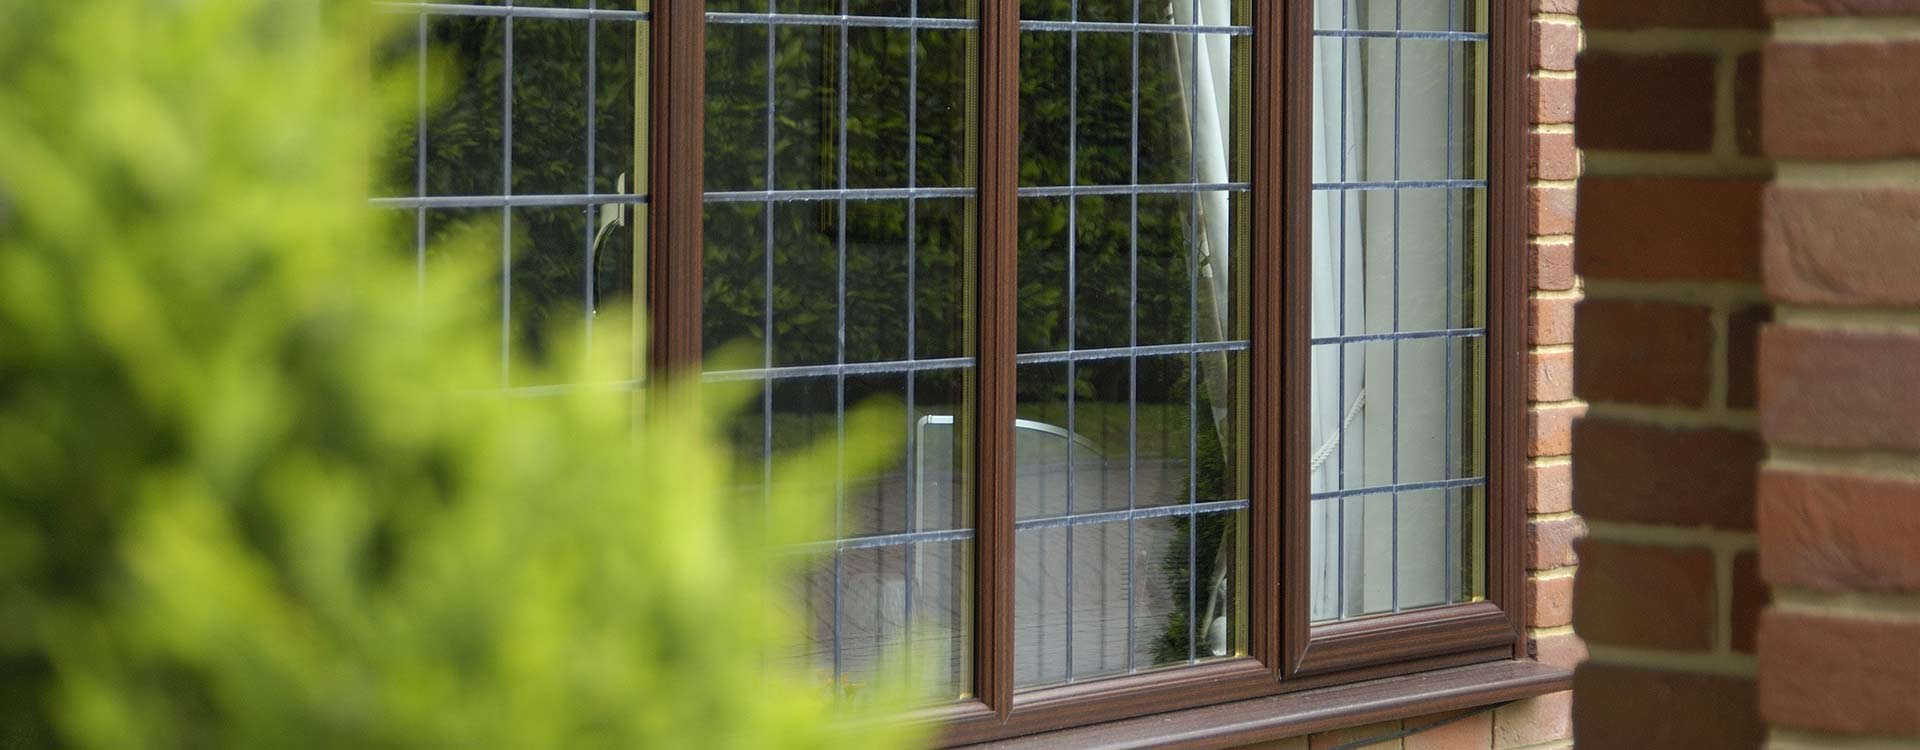 A and K Home Improvements - Warranty, Windows, Doors and Conservatories Installation, Suffolk, Essex, Colchester